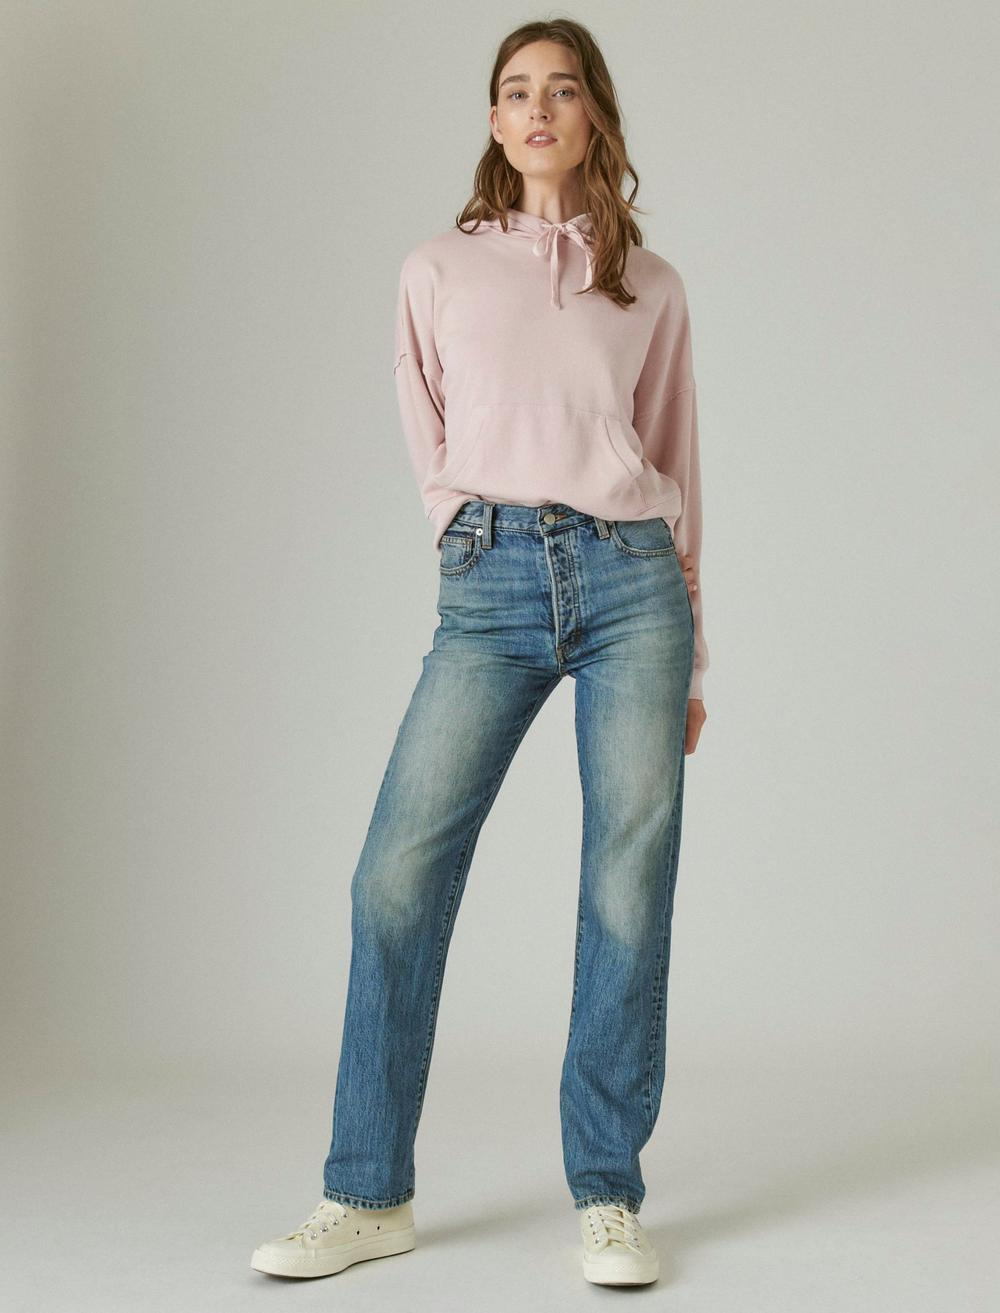 HIGH RISE 90's JEAN, image 1